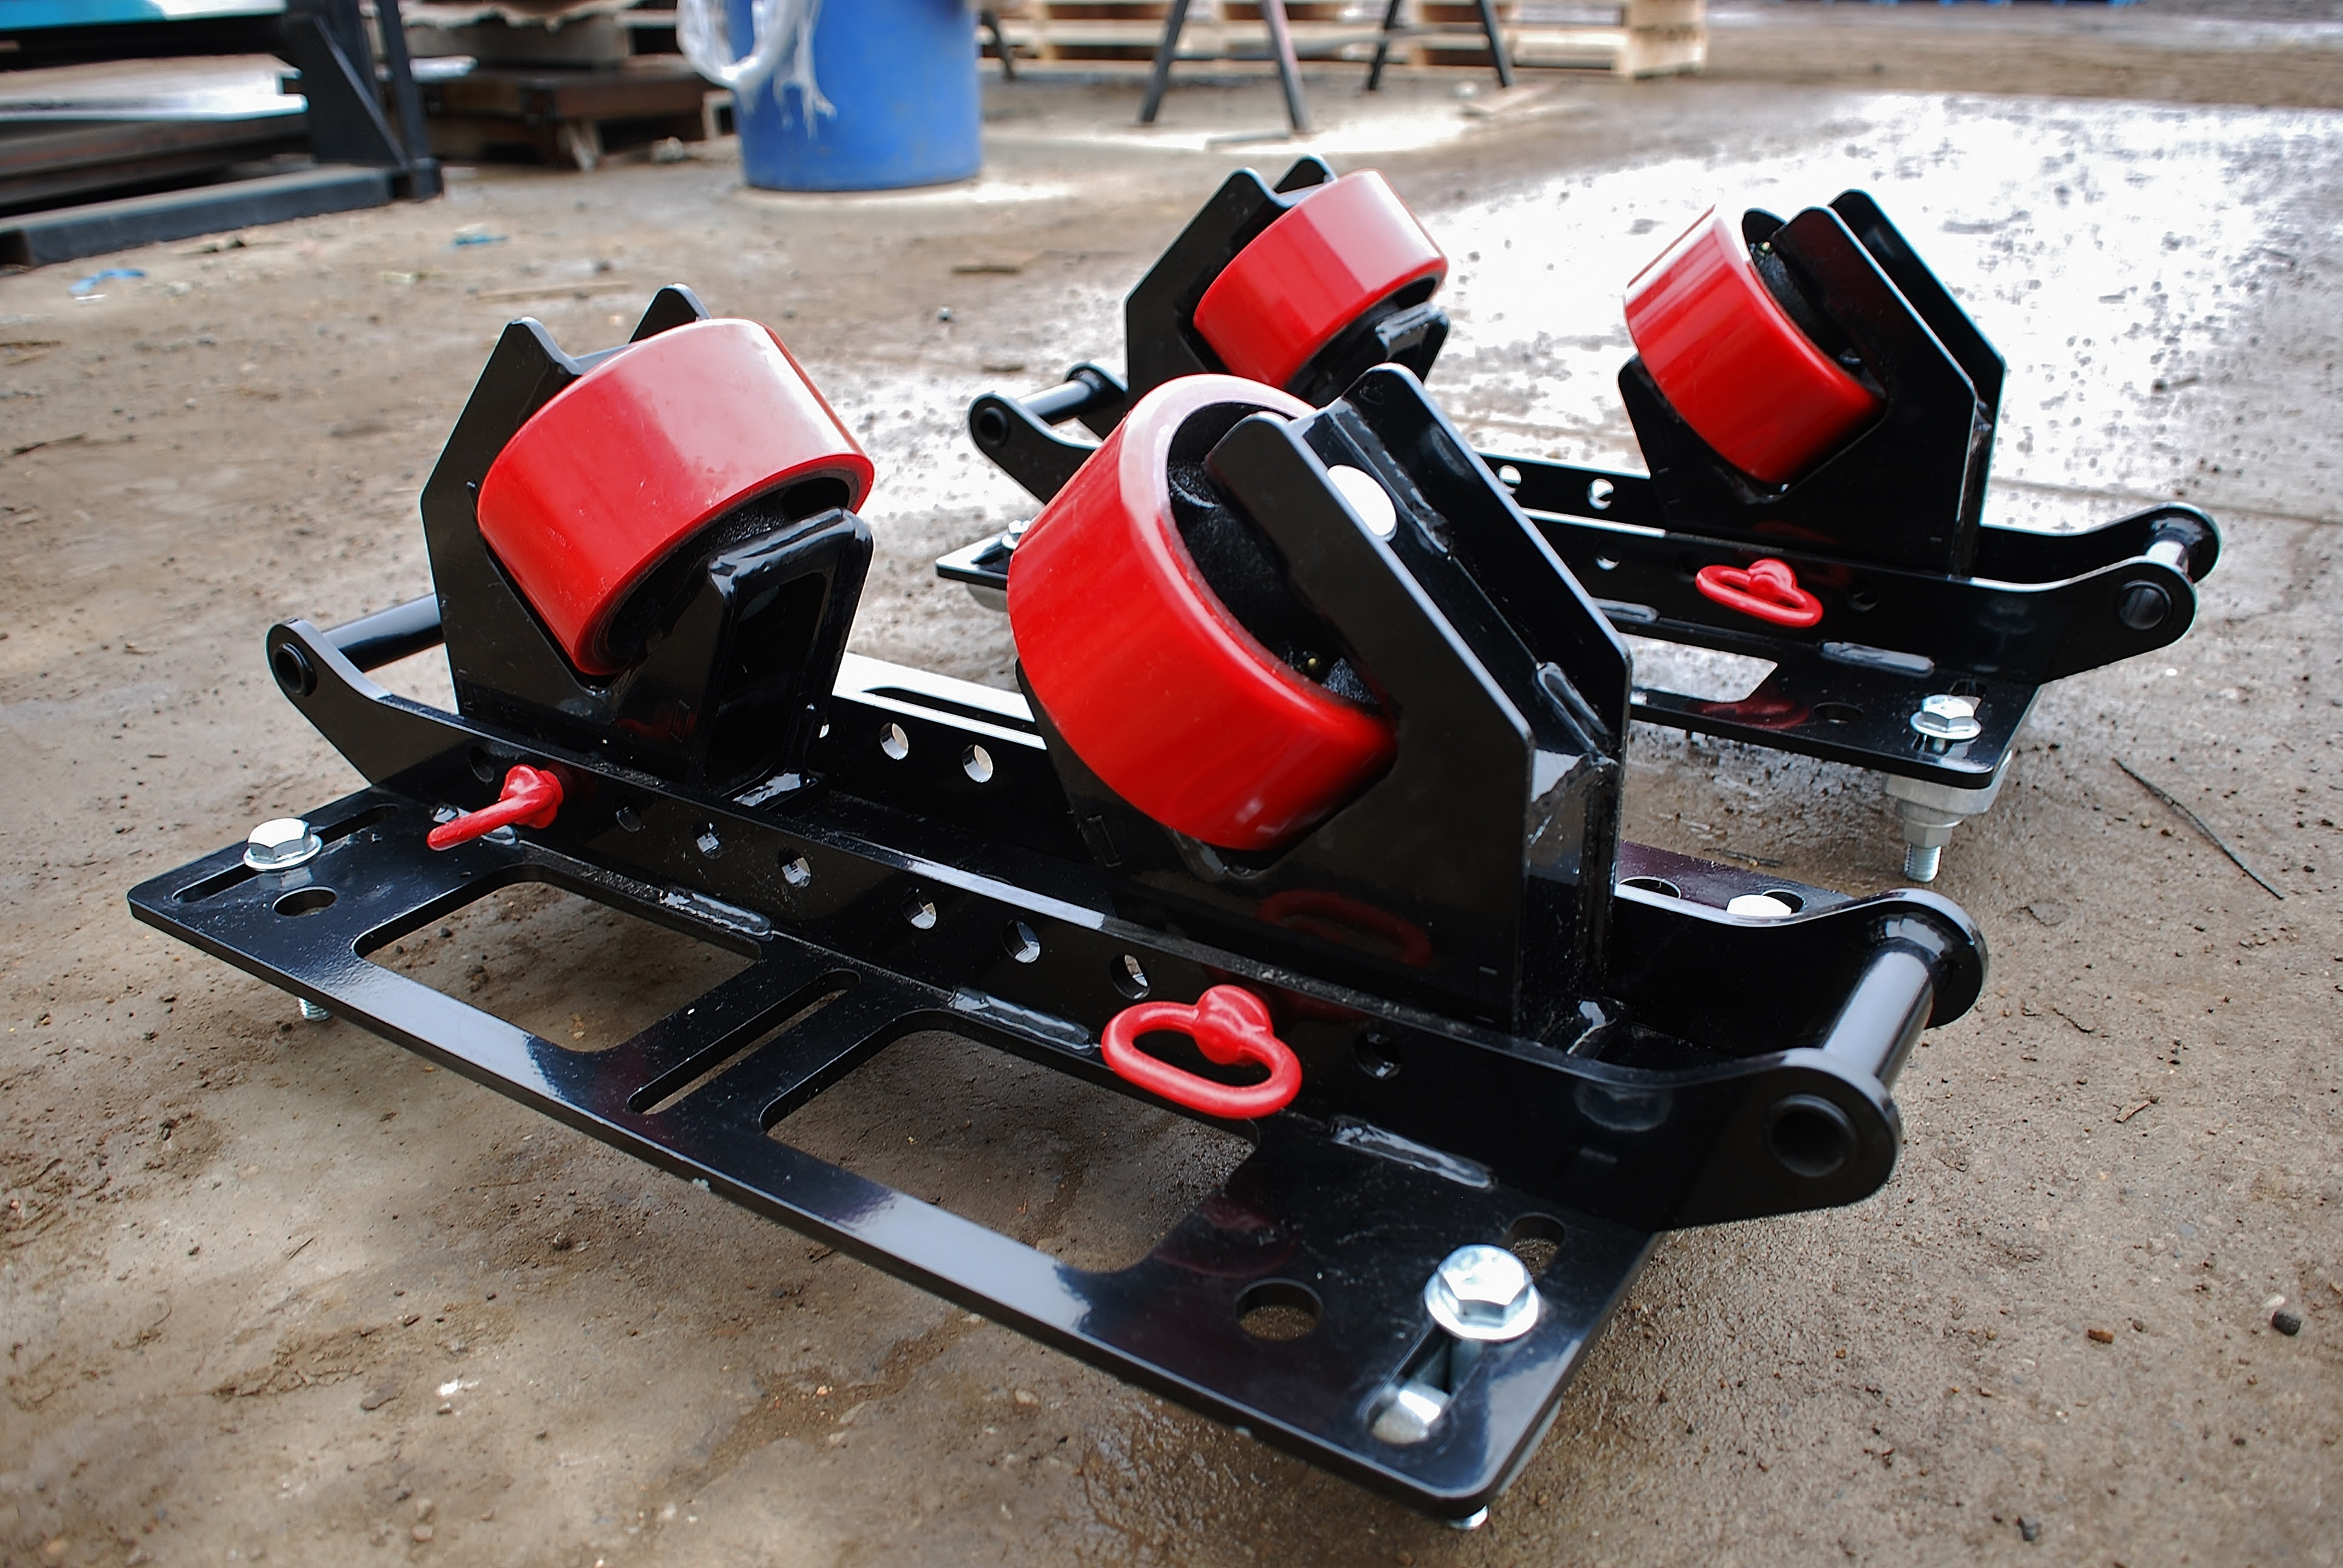 2-ton beam clamp rigging rollers for pipe rack installations